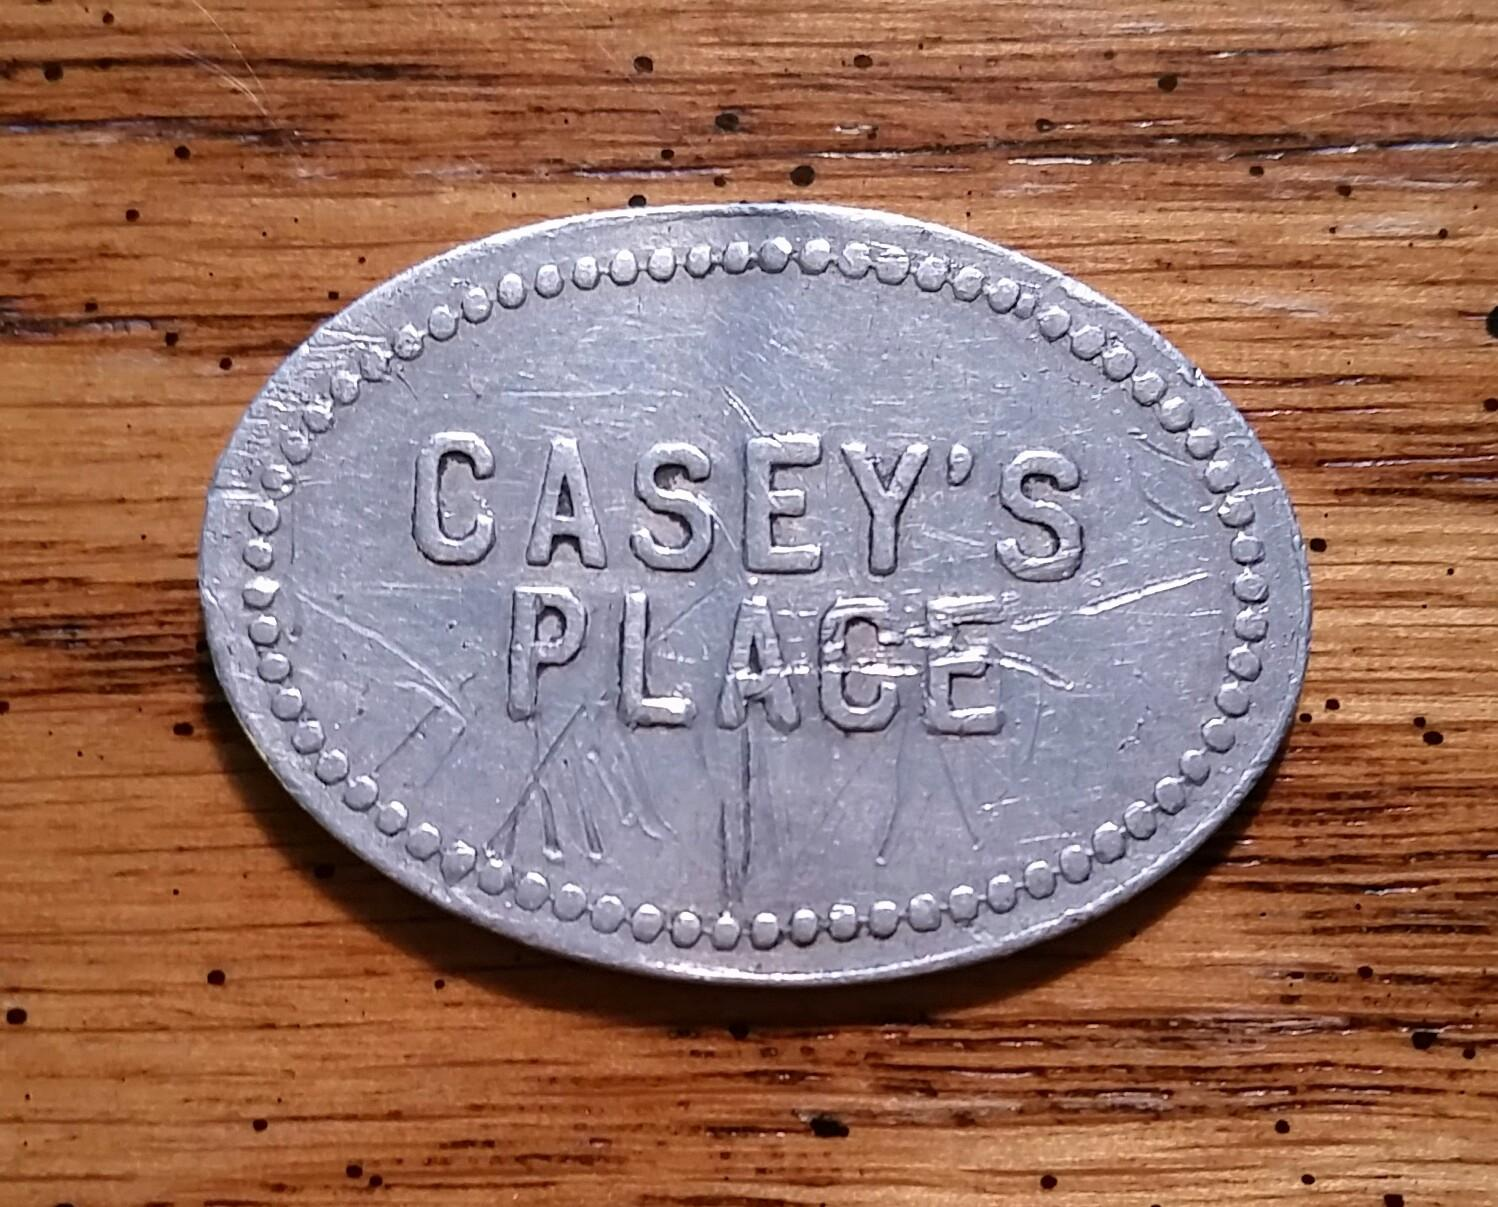 Michigan berrien county niles - Obverse Image Tc 422729 Casey S Place